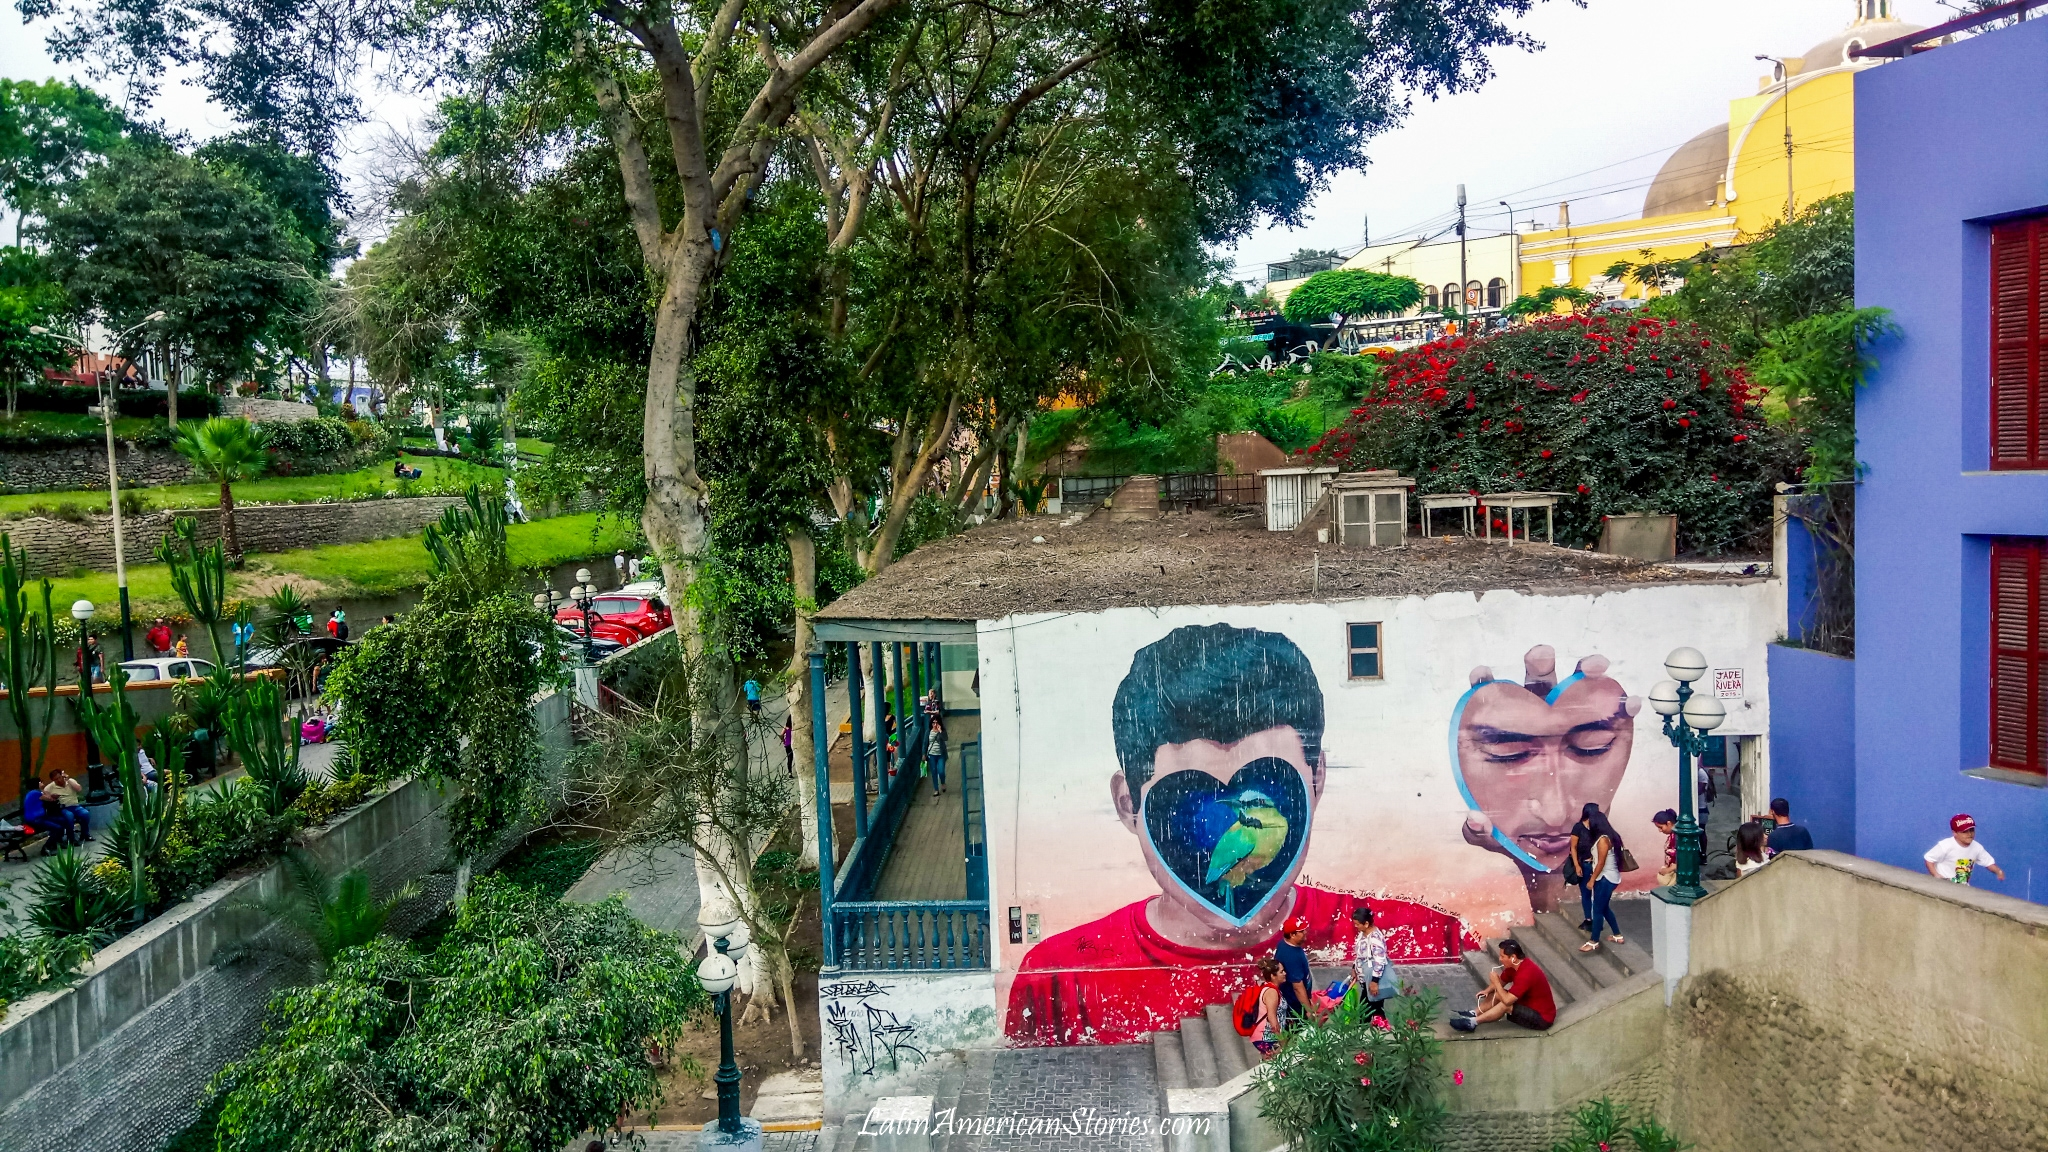 Spacer po Barranco – Lima, Peru